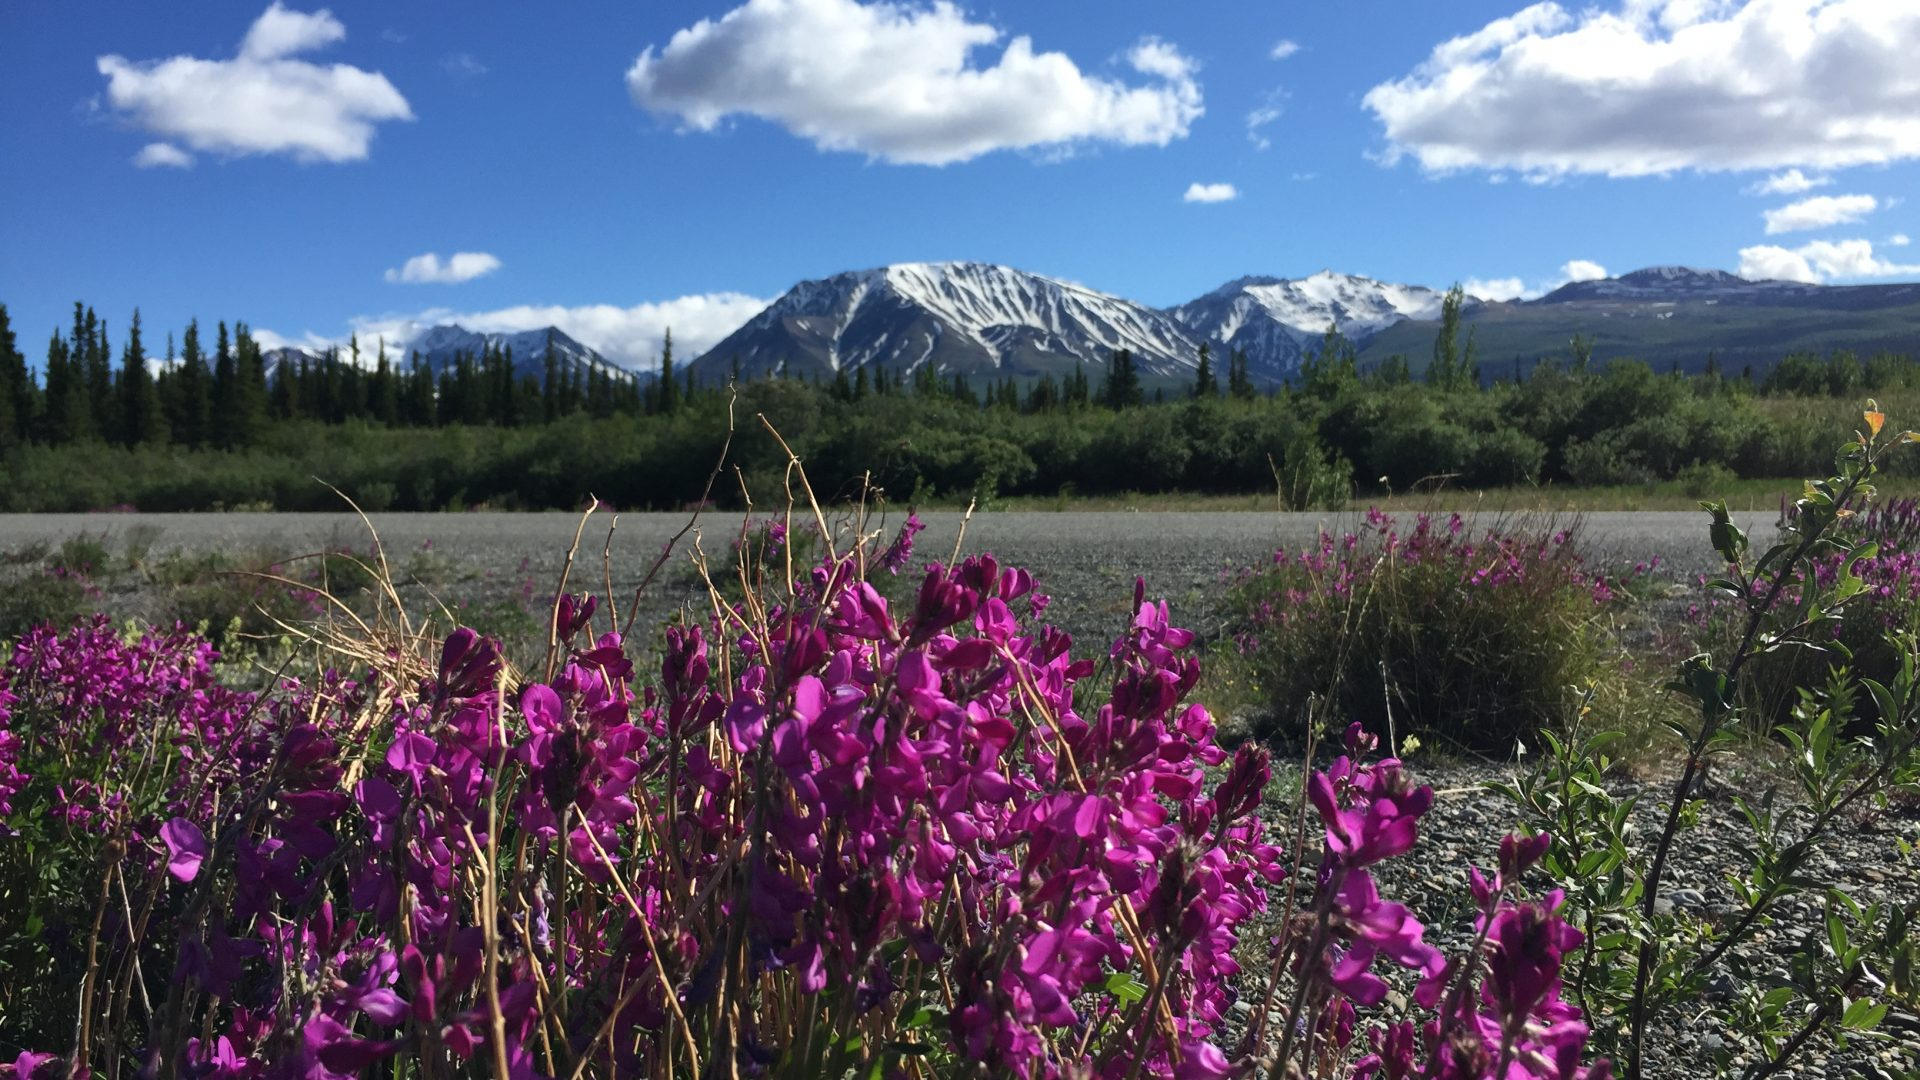 Kluane mountains and fireweed